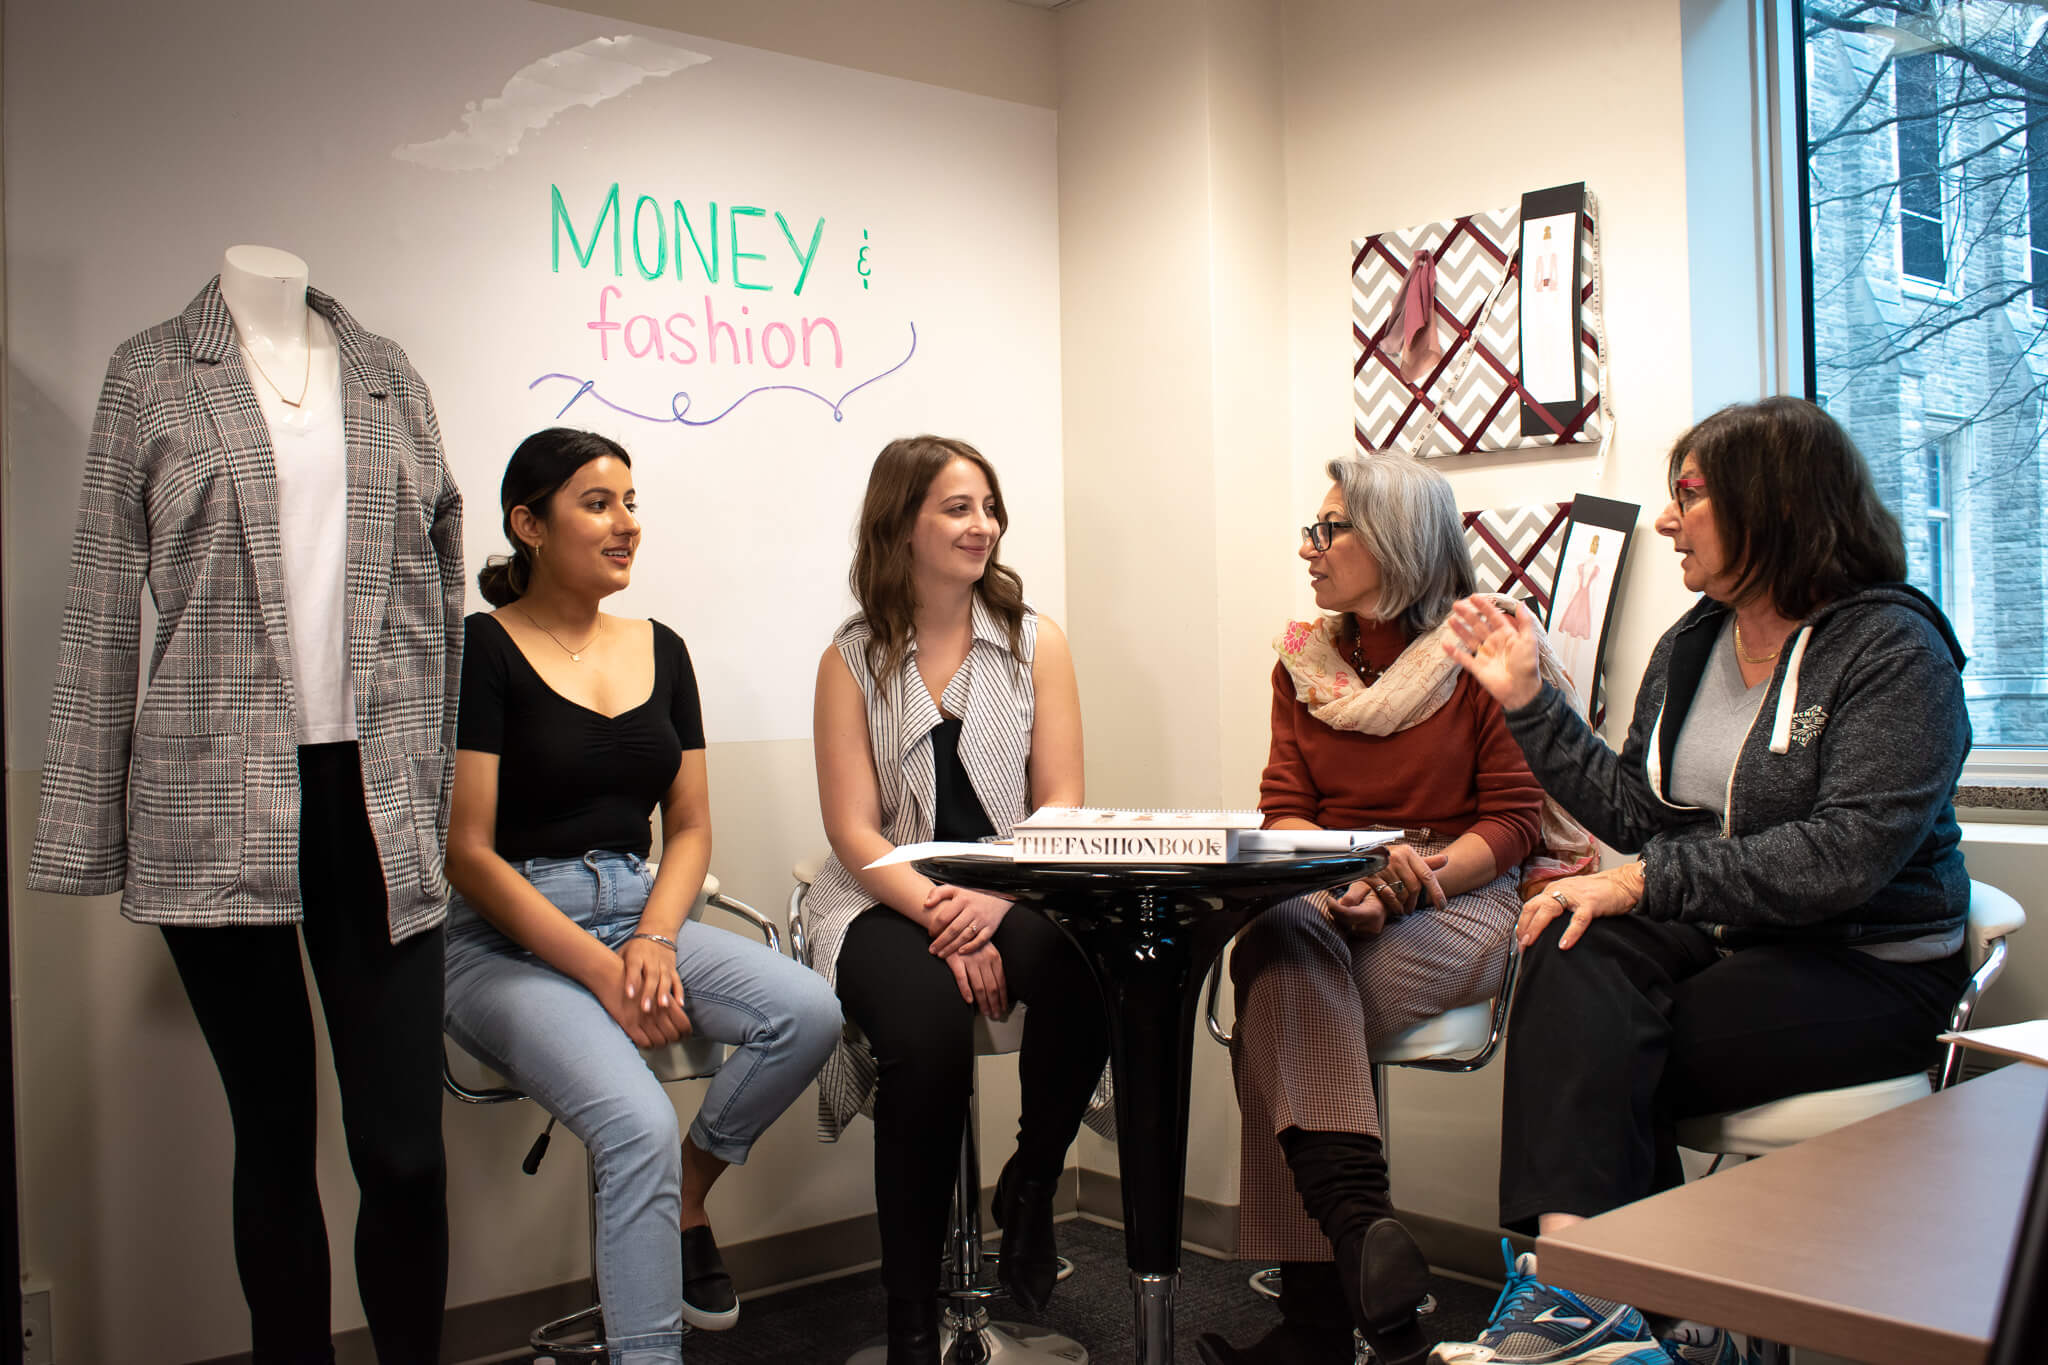 Image contains three staff members and one student speaking beside a mannequin